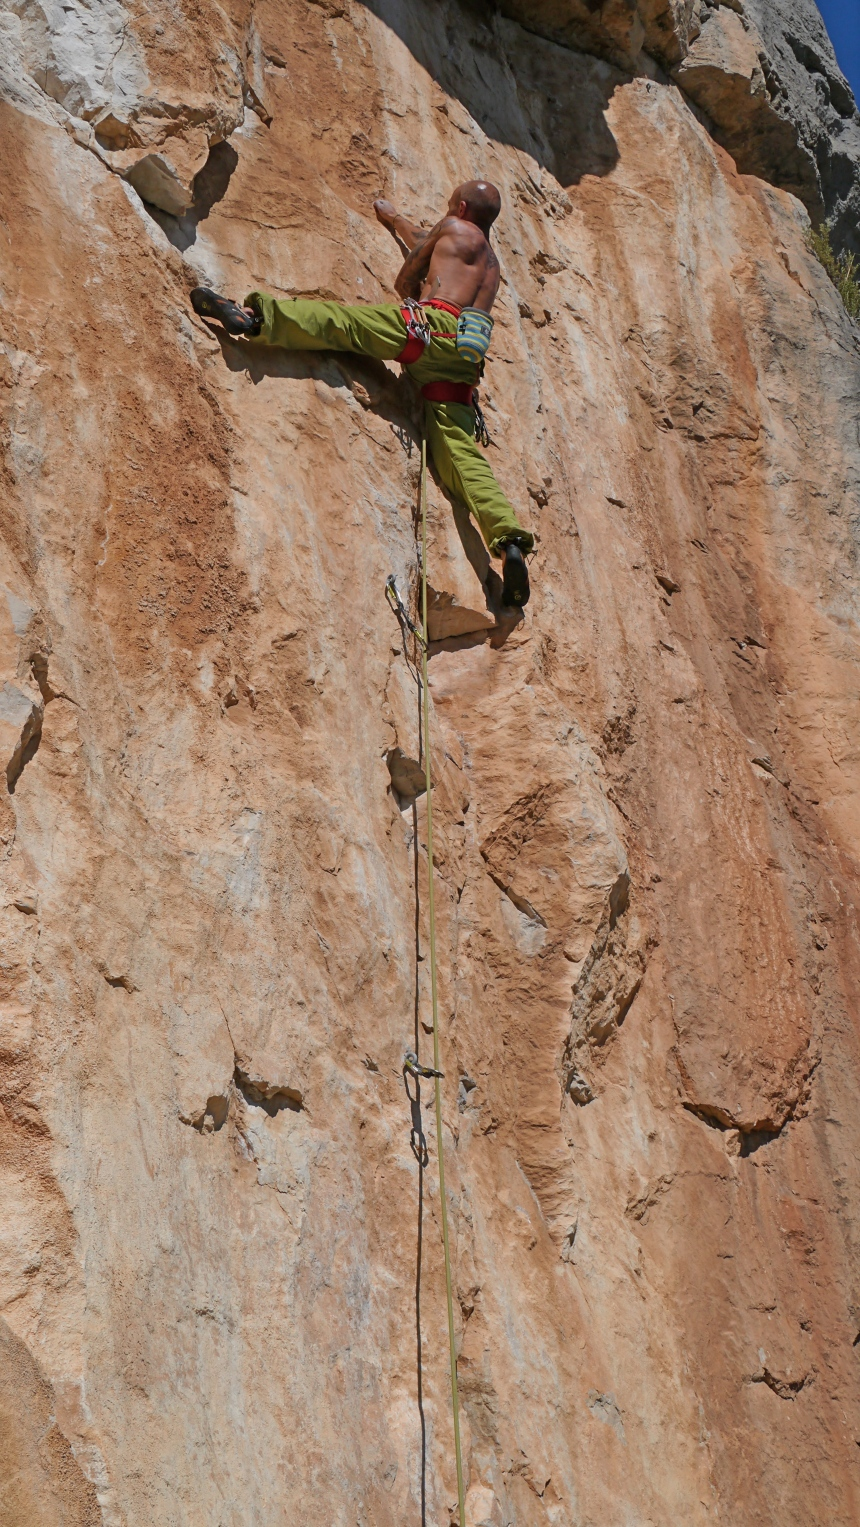 Getting pumped on Ete Orangeux 6b+